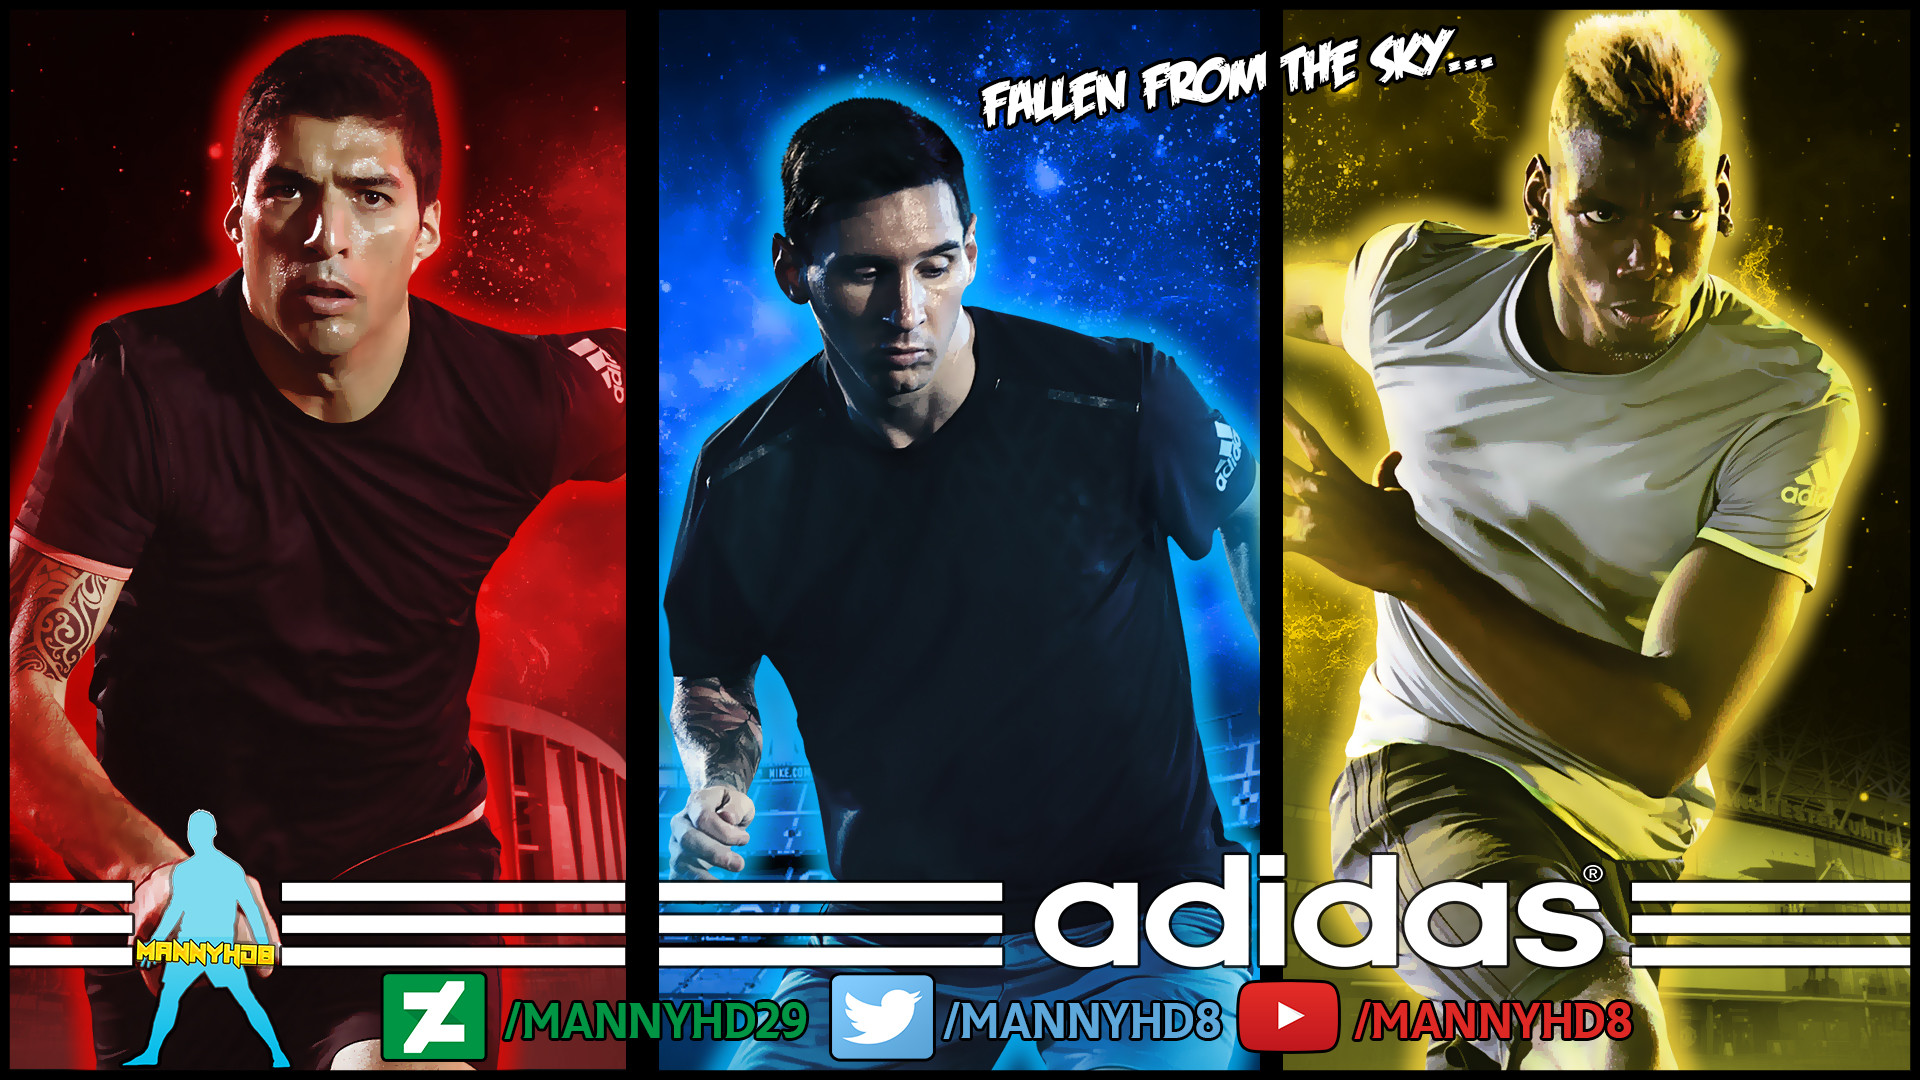 … Luis Suarez , Messi and Paul Pogba – Wallpaper by MannyHD29